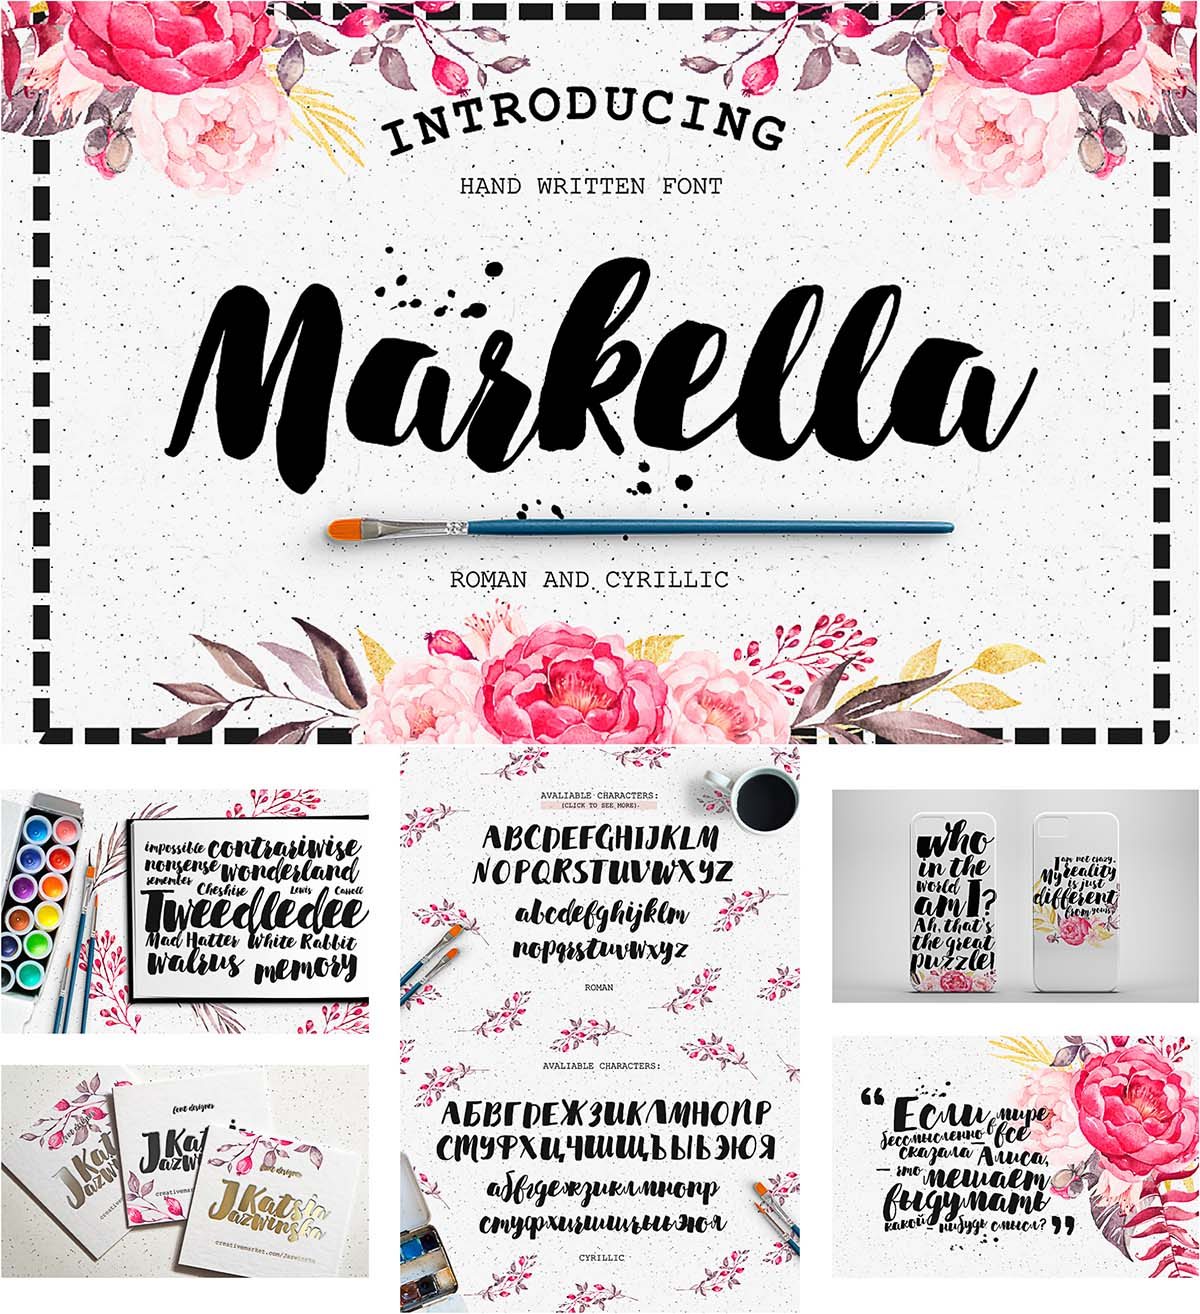 Markella font with cyrillic typeface